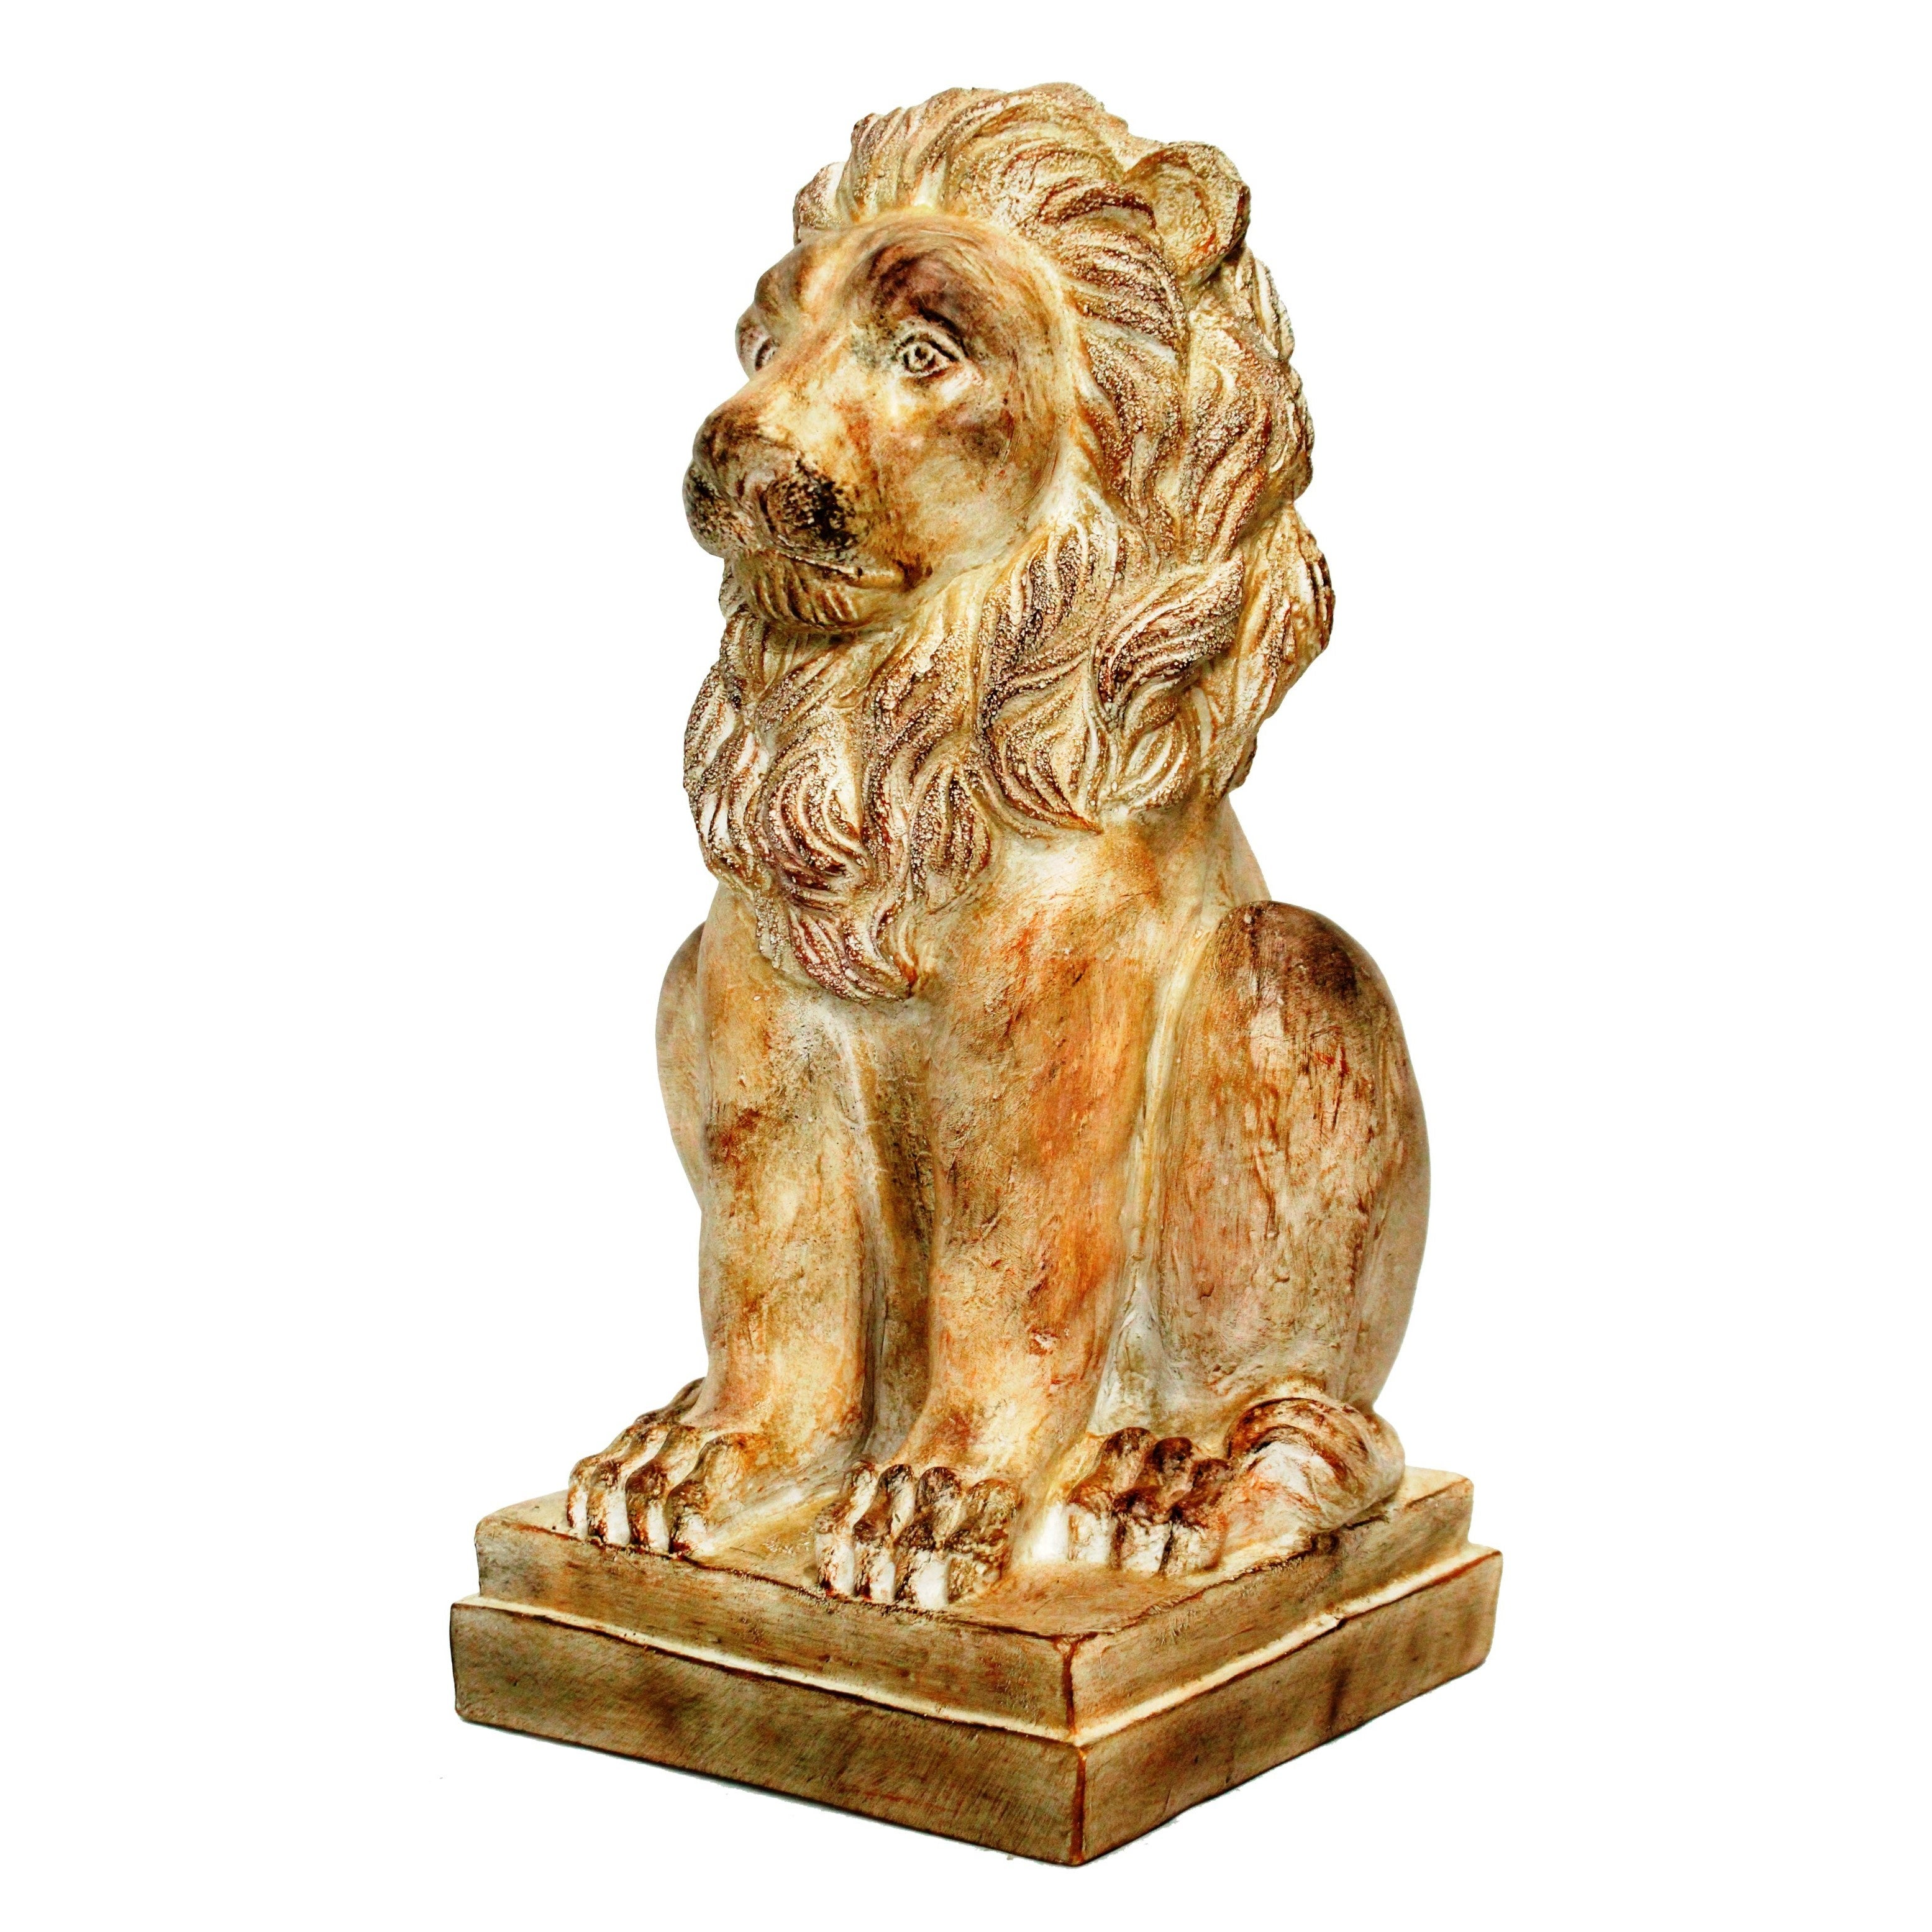 24-inch Brown Lion Statue (Resin), Outdoor Décor